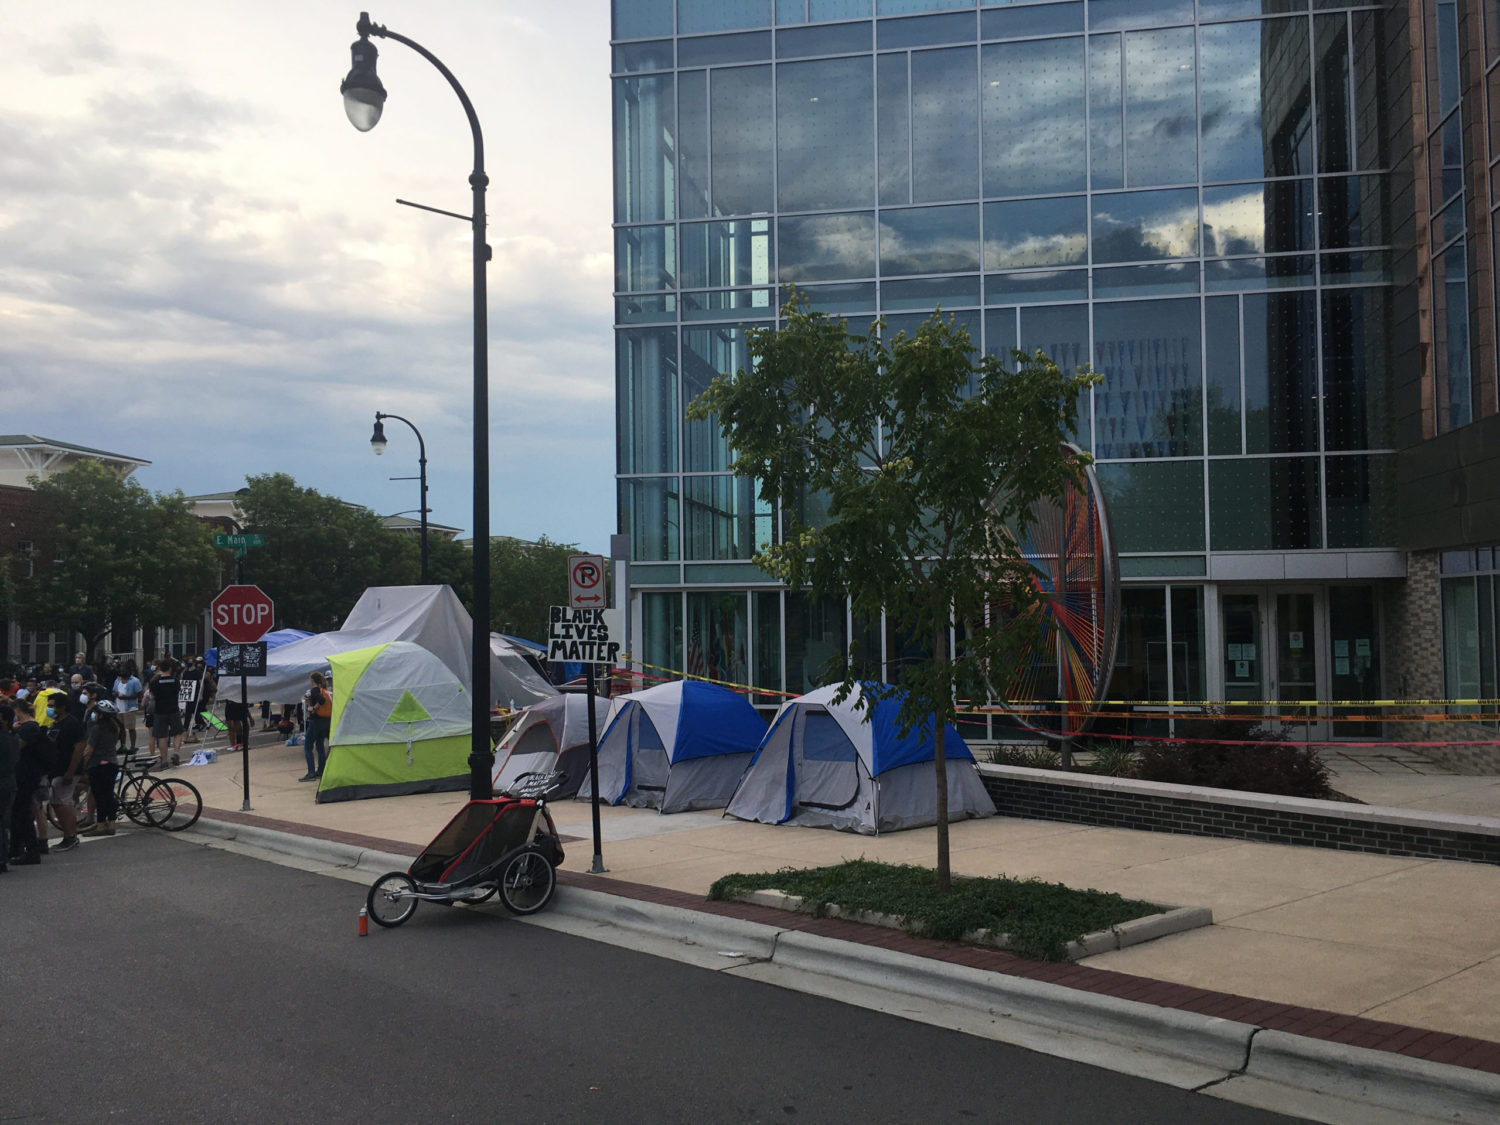 Durham residents started camping outside the police department on Monday night, June 15. The action was spontaneous and the camp has grown to include about a dozen tents and awnings. This protest has not garnered much support from more established organizers in the city.